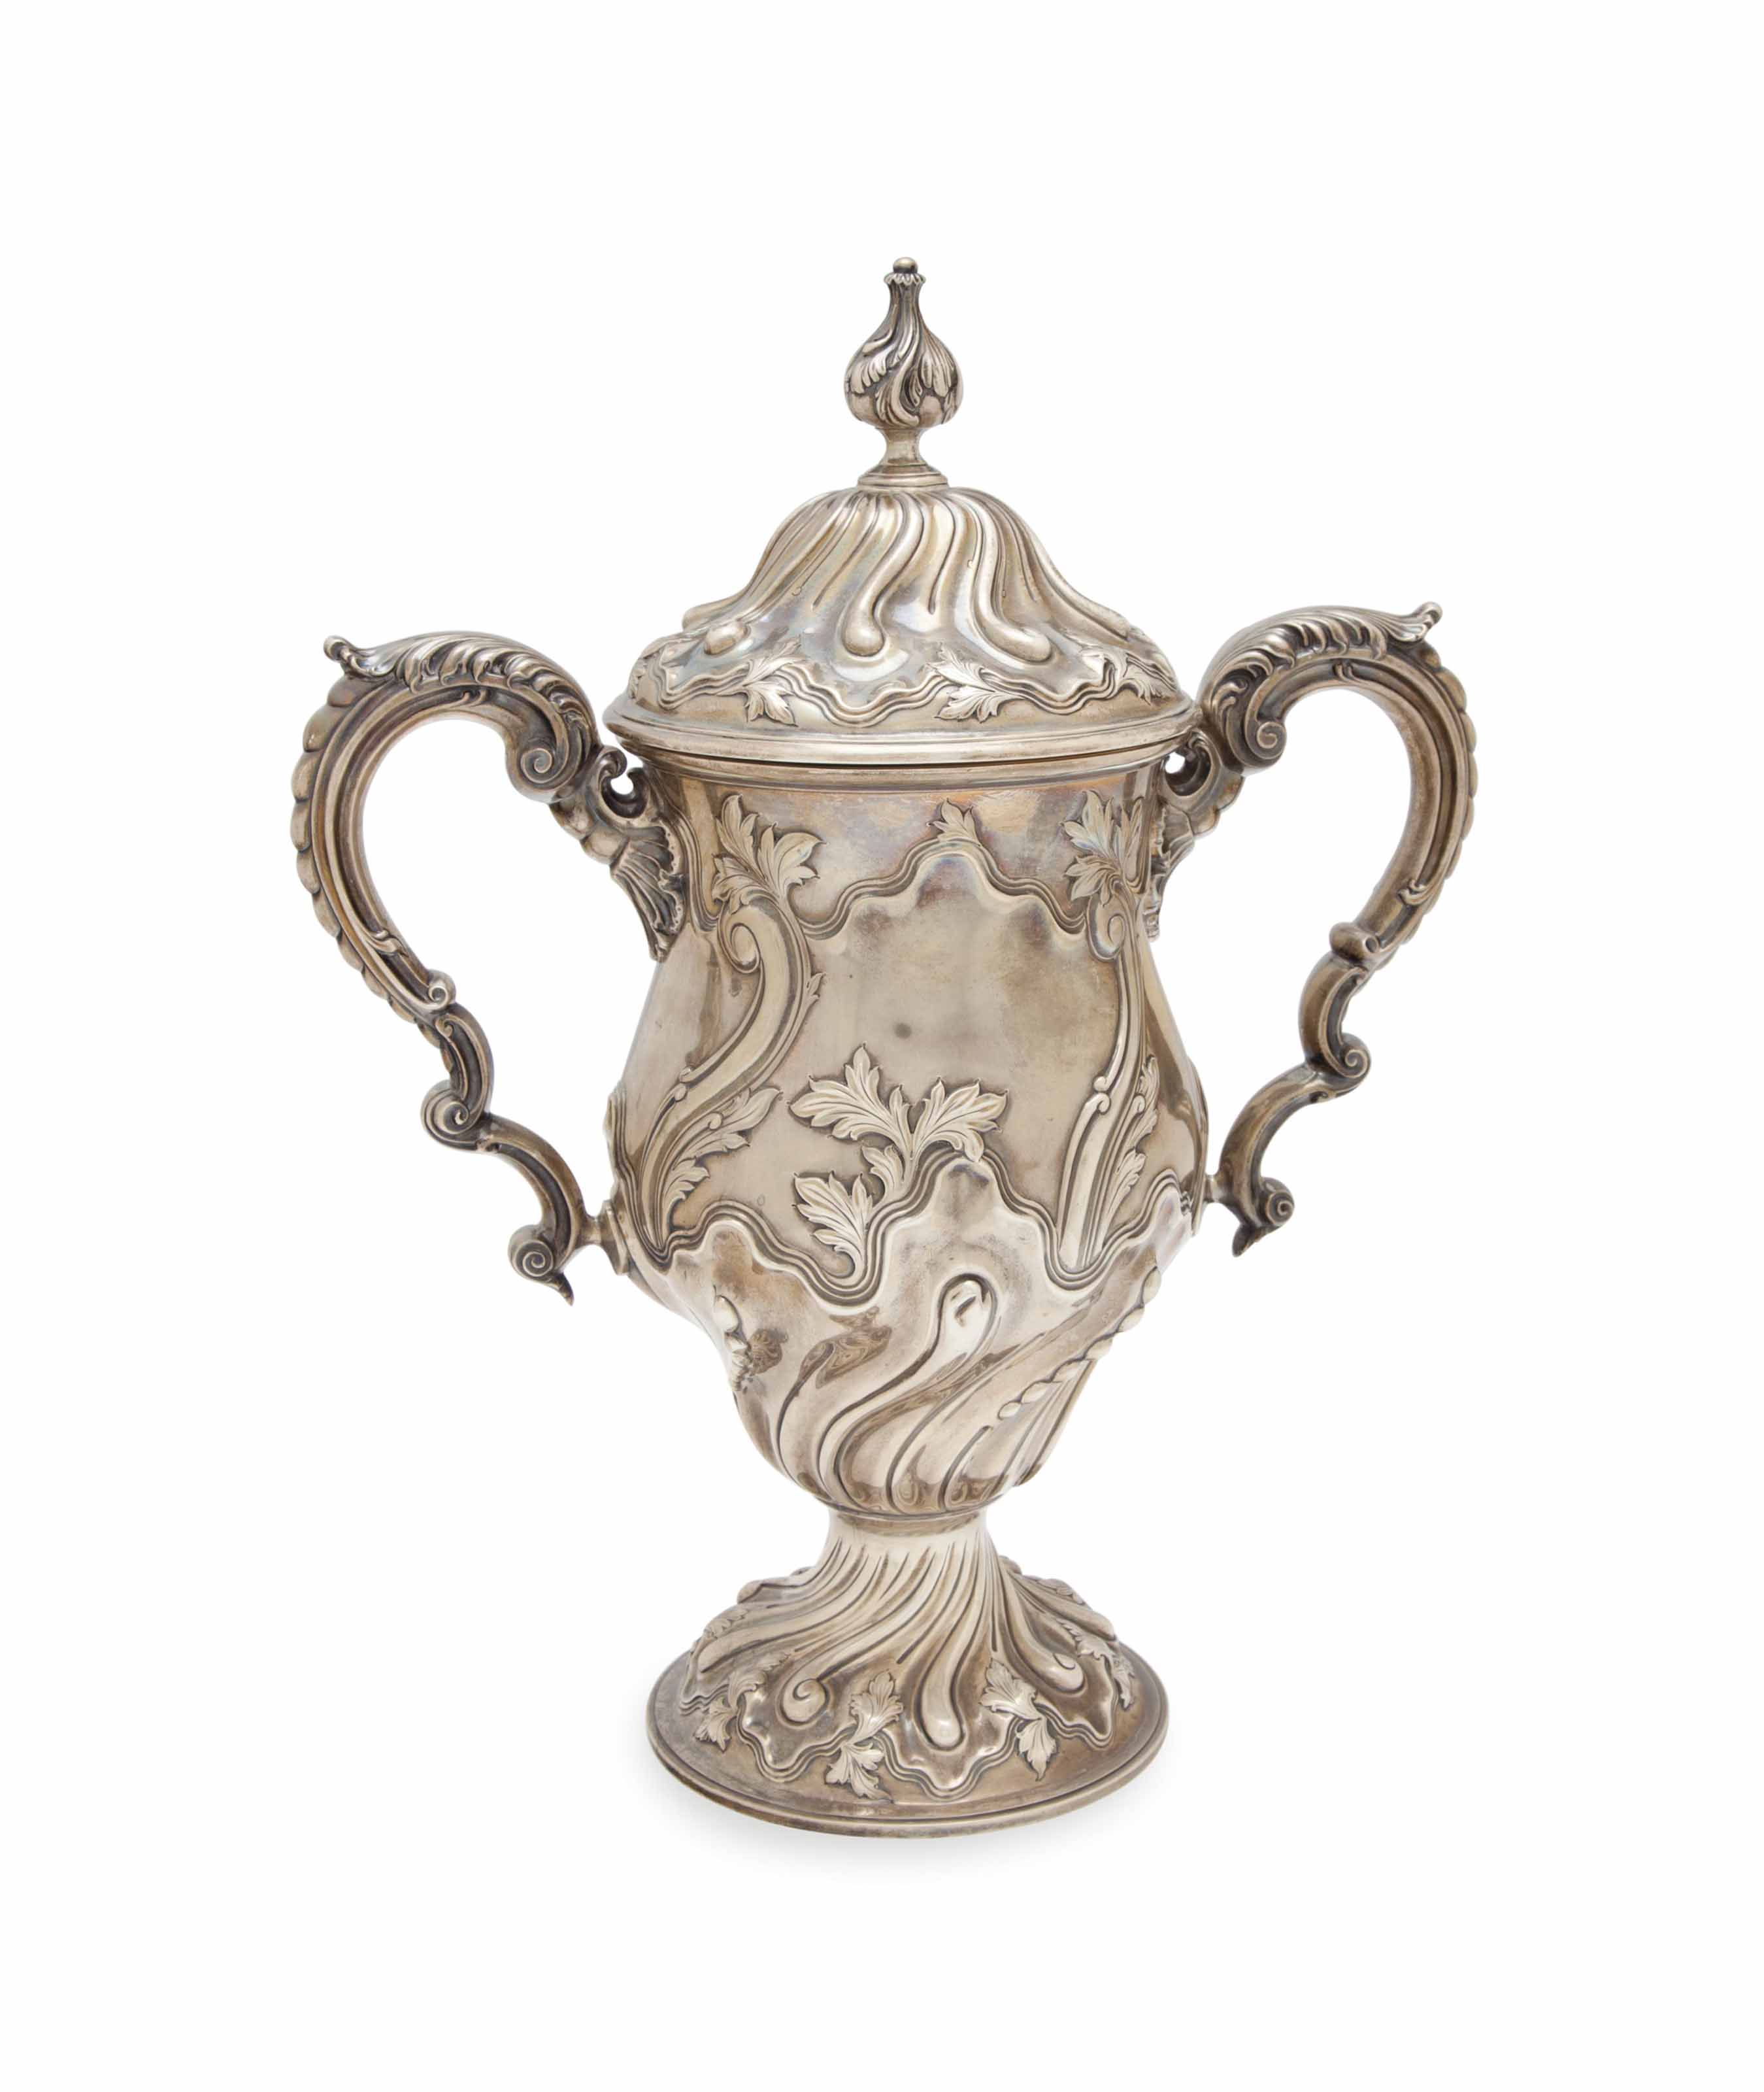 AN AMERICAN REPOUSSE SILVER LARGE TWO HANDLED CUP AND COVER,